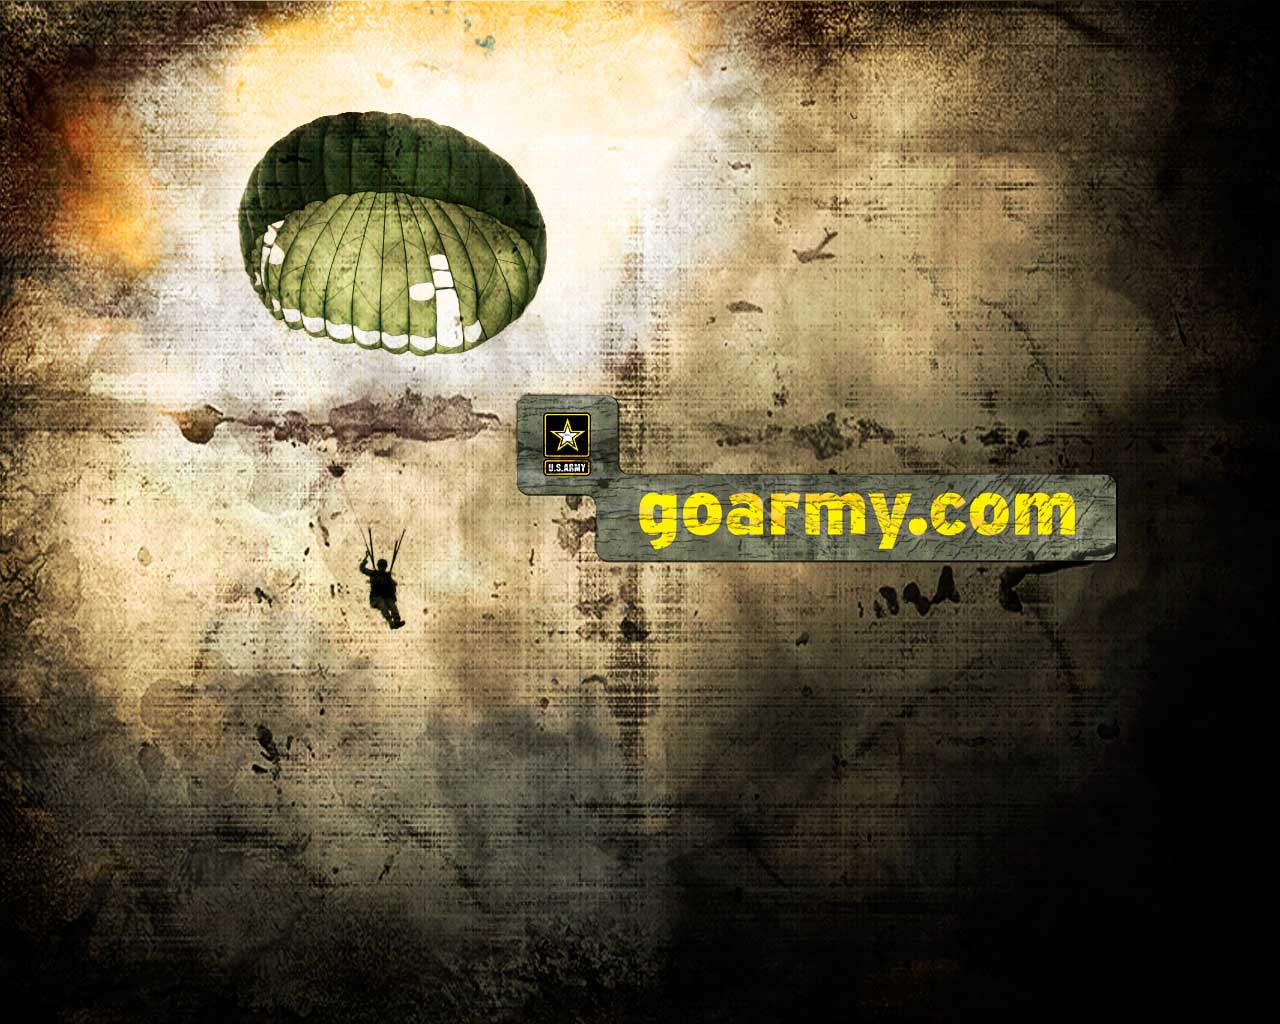 airborne infantry wallpaper - photo #41